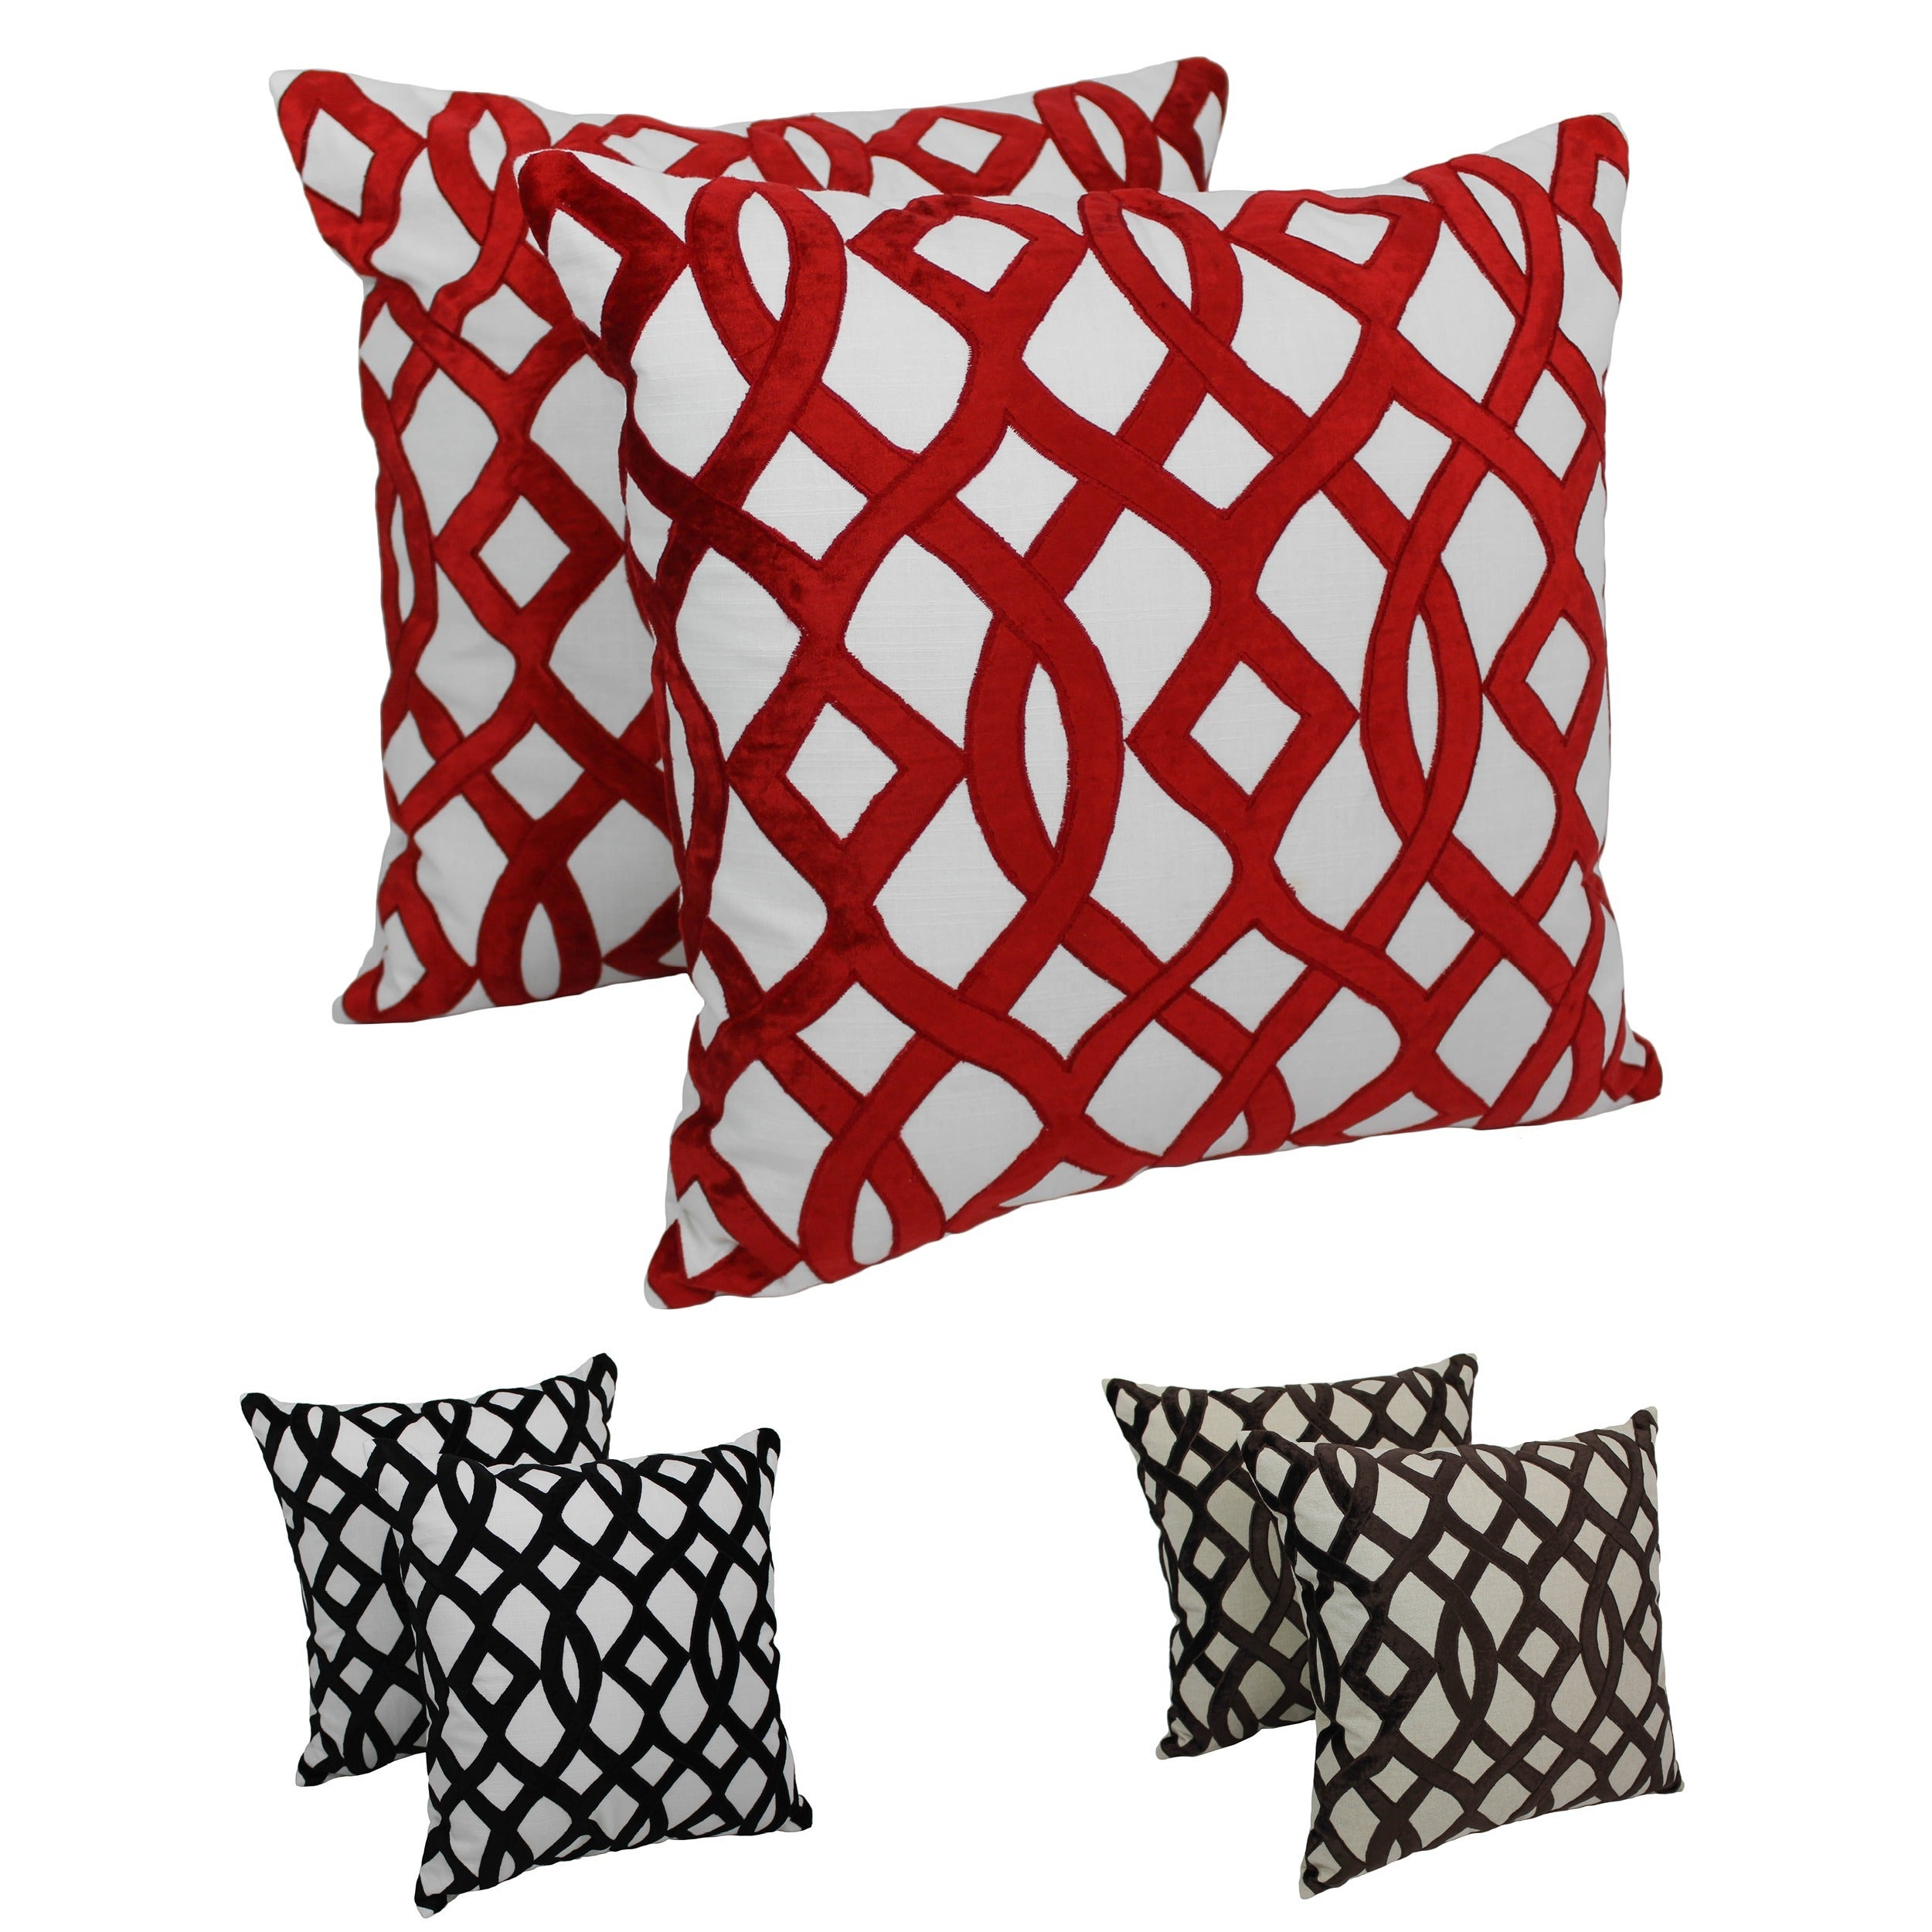 collections throw original greek decorative products stripe pillows key pillow modern trellis x